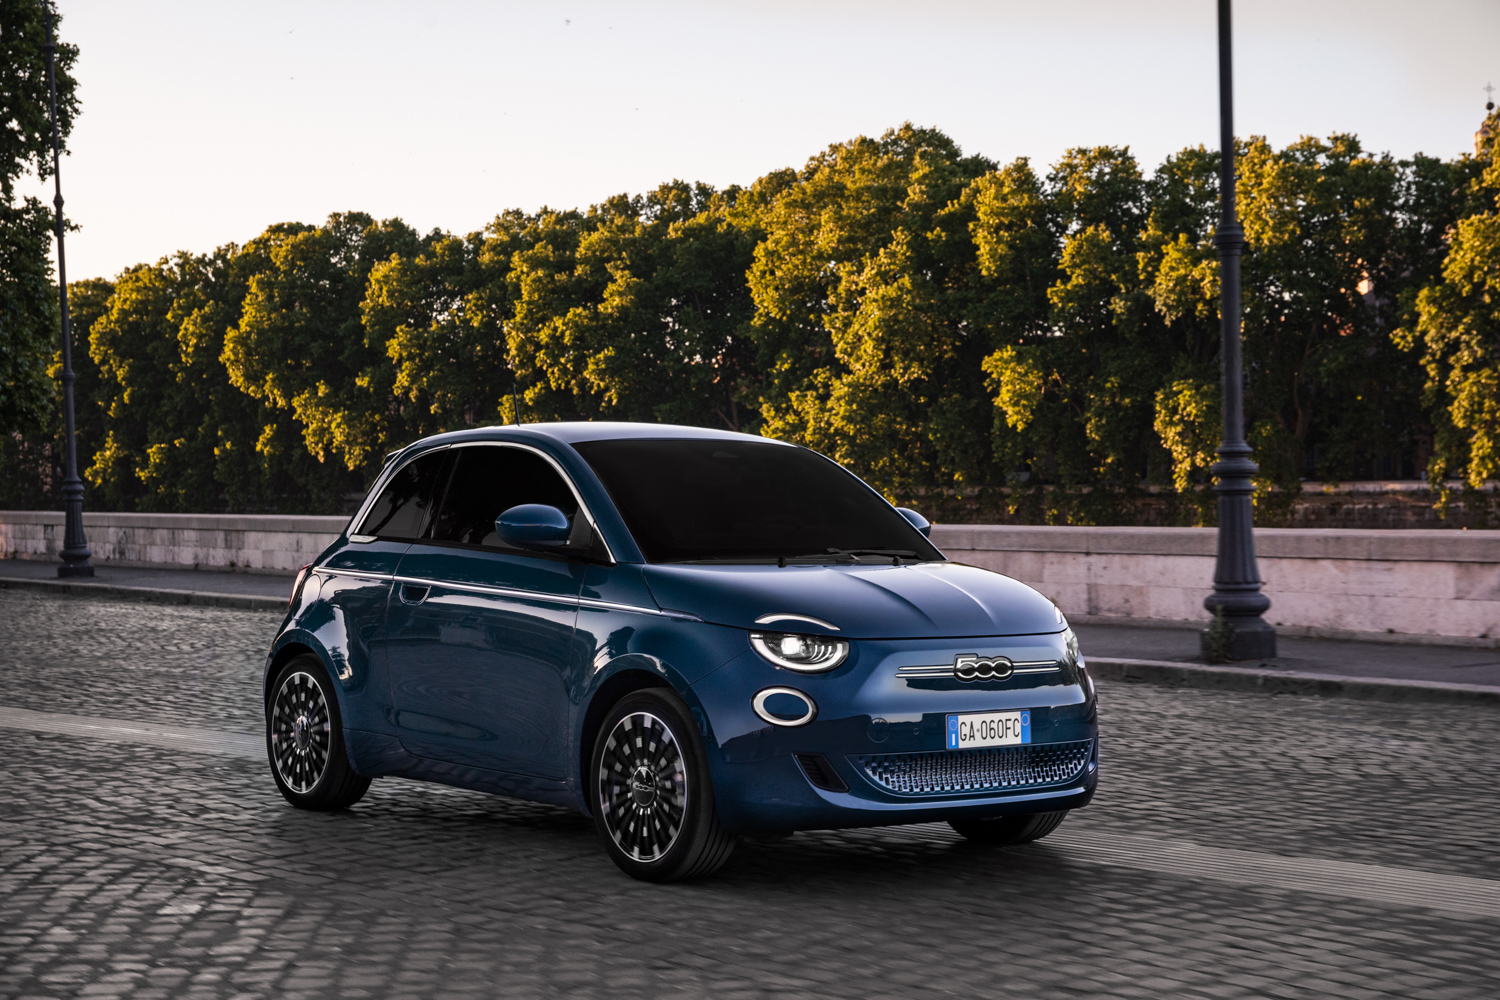 Car News | Order books open for electric Fiat 500 | CompleteCar.ie